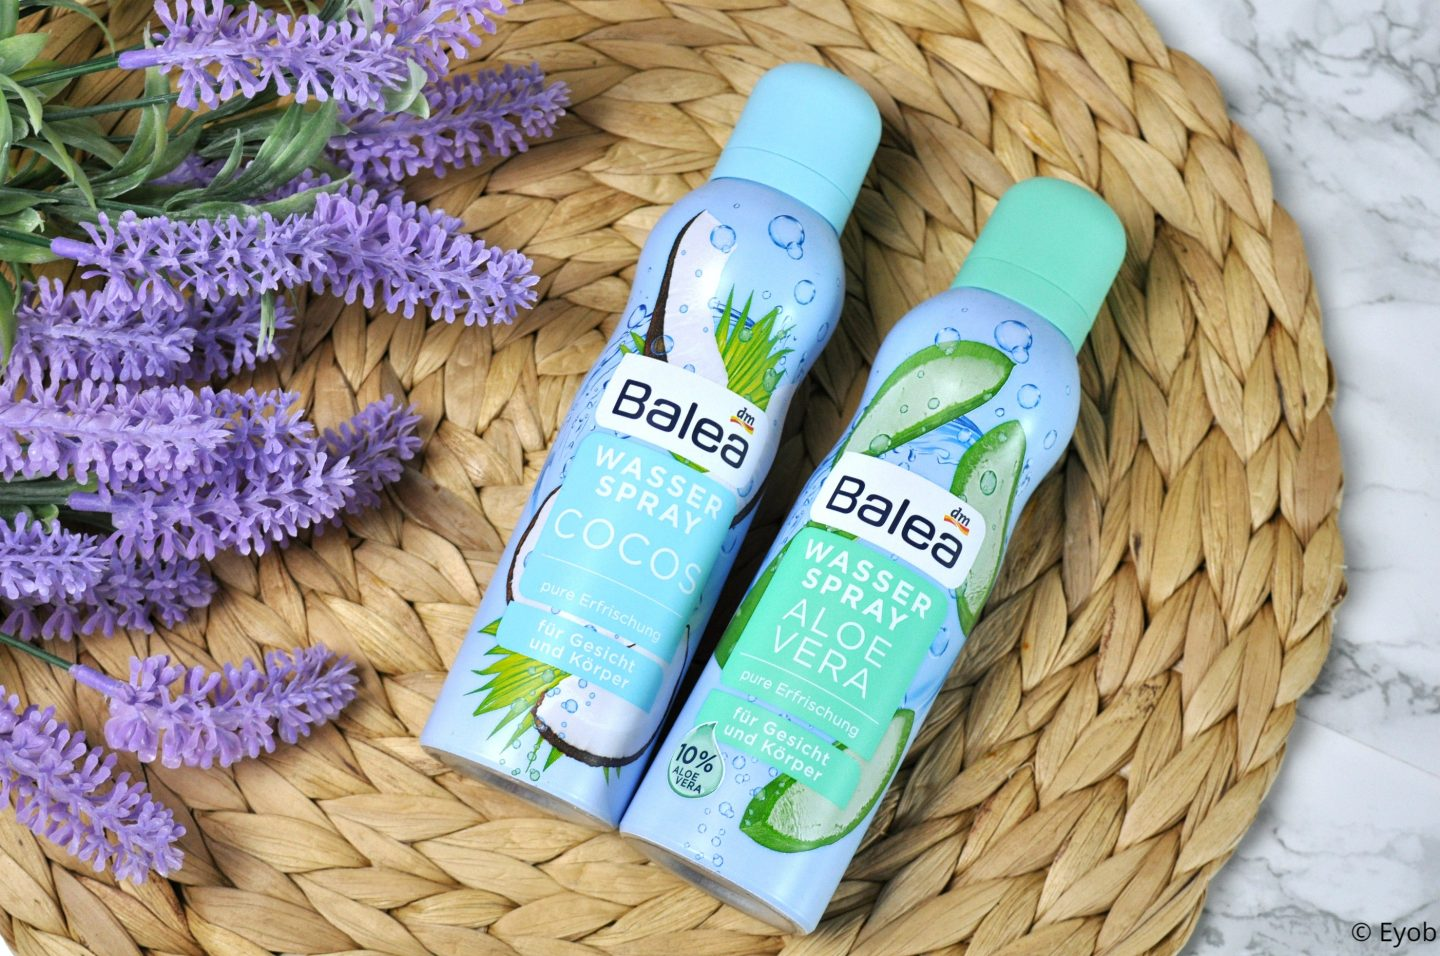 Balea Wasser Spray – review